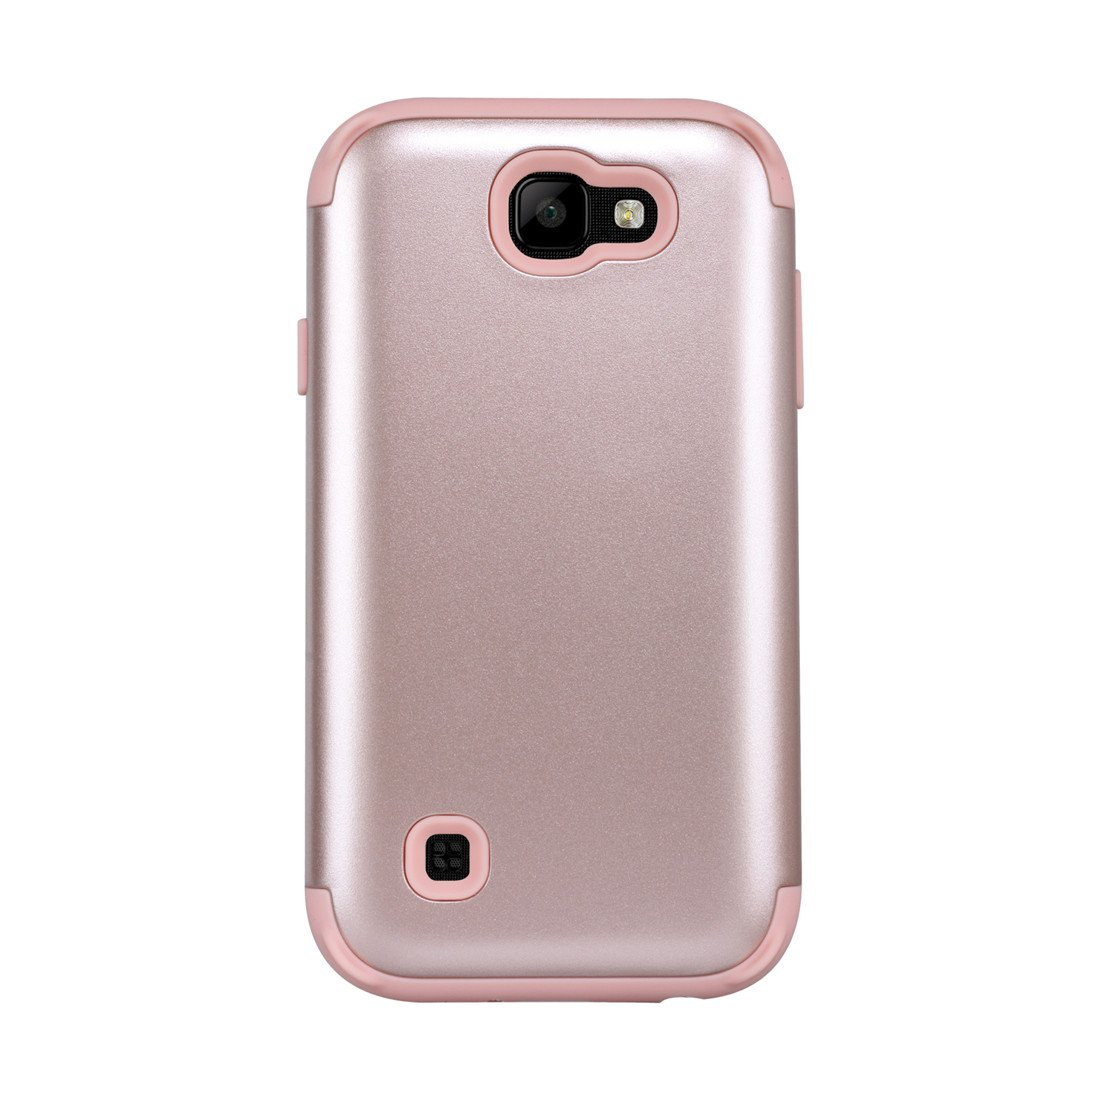 LG K3 2017 Case, Love Sound Dual Layer [Hard PC+ Soft Silicone] Hybrid Heavy Duty Shockproof Full-Body Protective Case Cover for LG K3 (Release in 2017) - Rose Gold by Love Sound (Image #1)